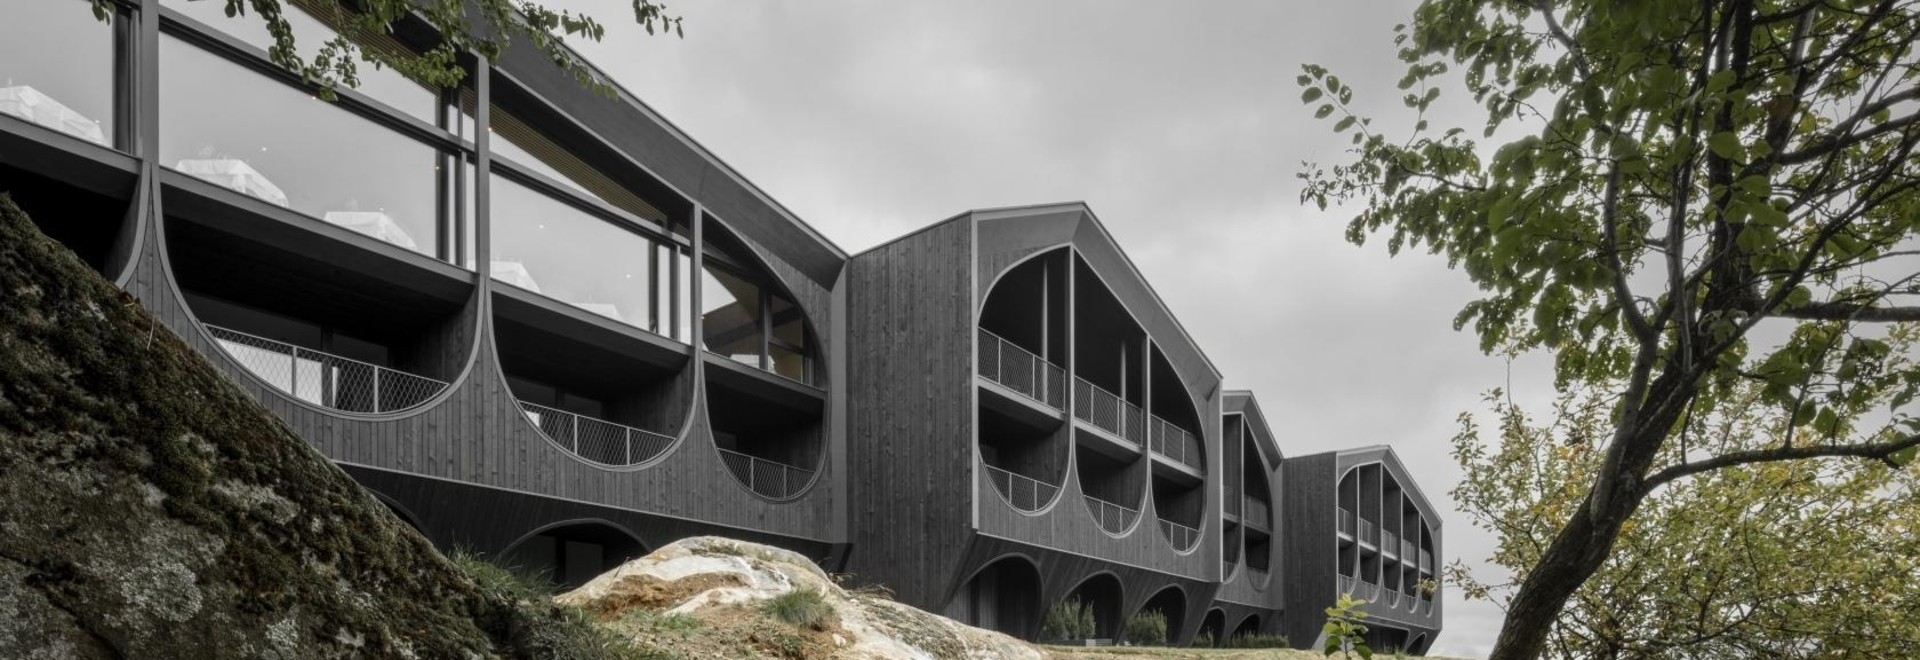 Radical South Tyrol hotel redefines Alpine architecture